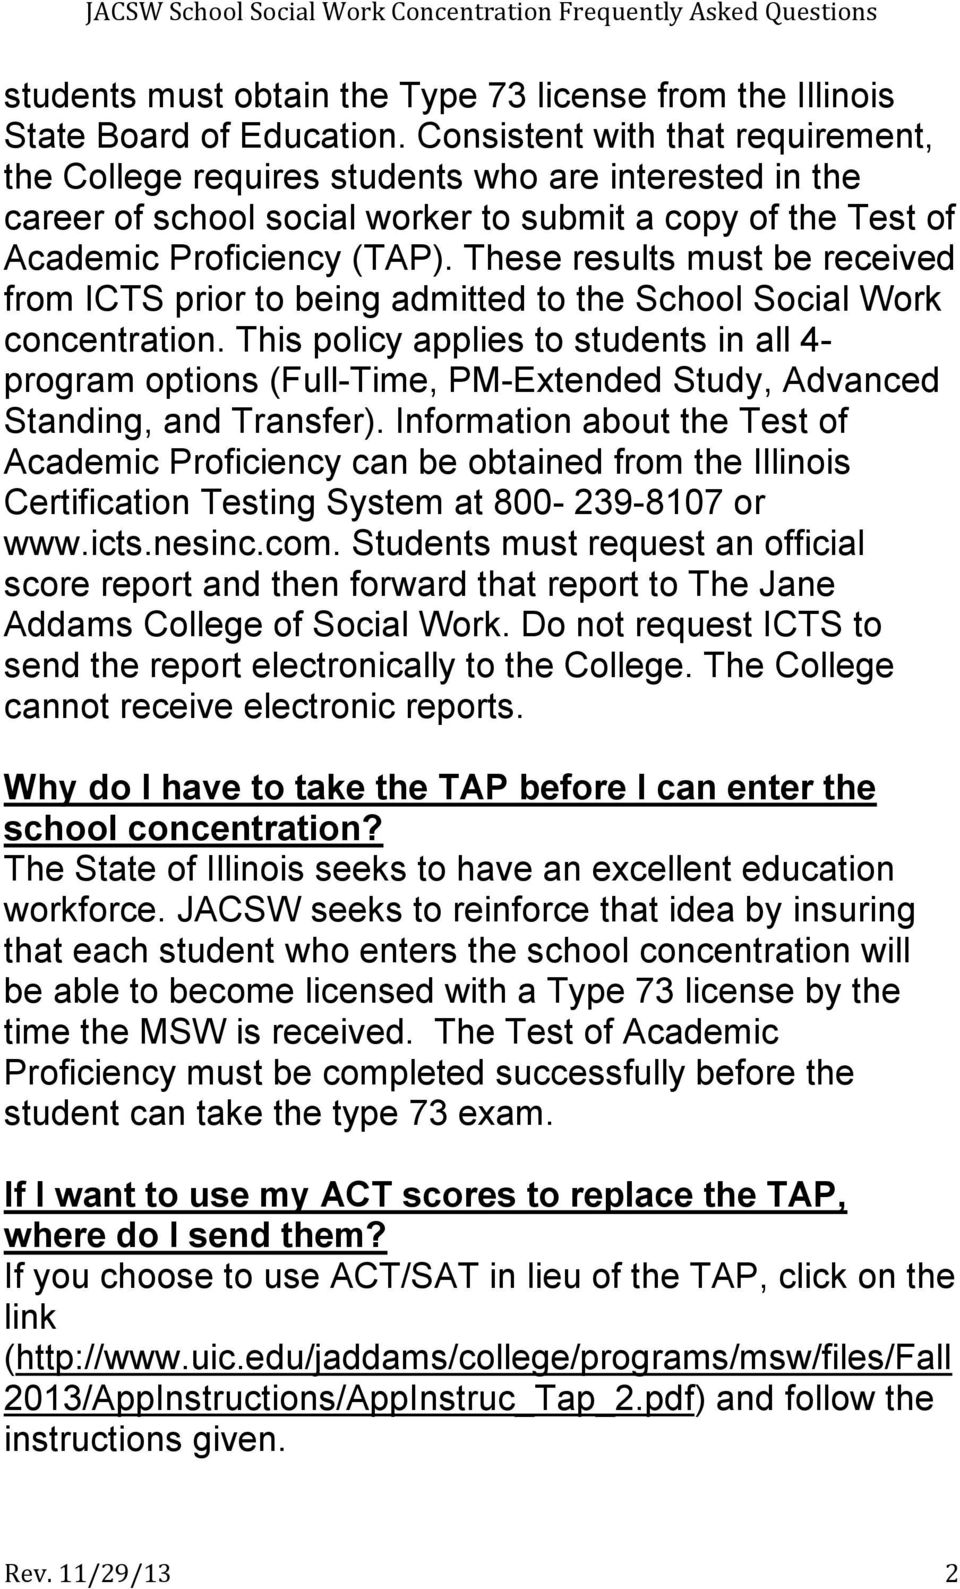 These results must be received from ICTS prior to being admitted to the School Social Work concentration.